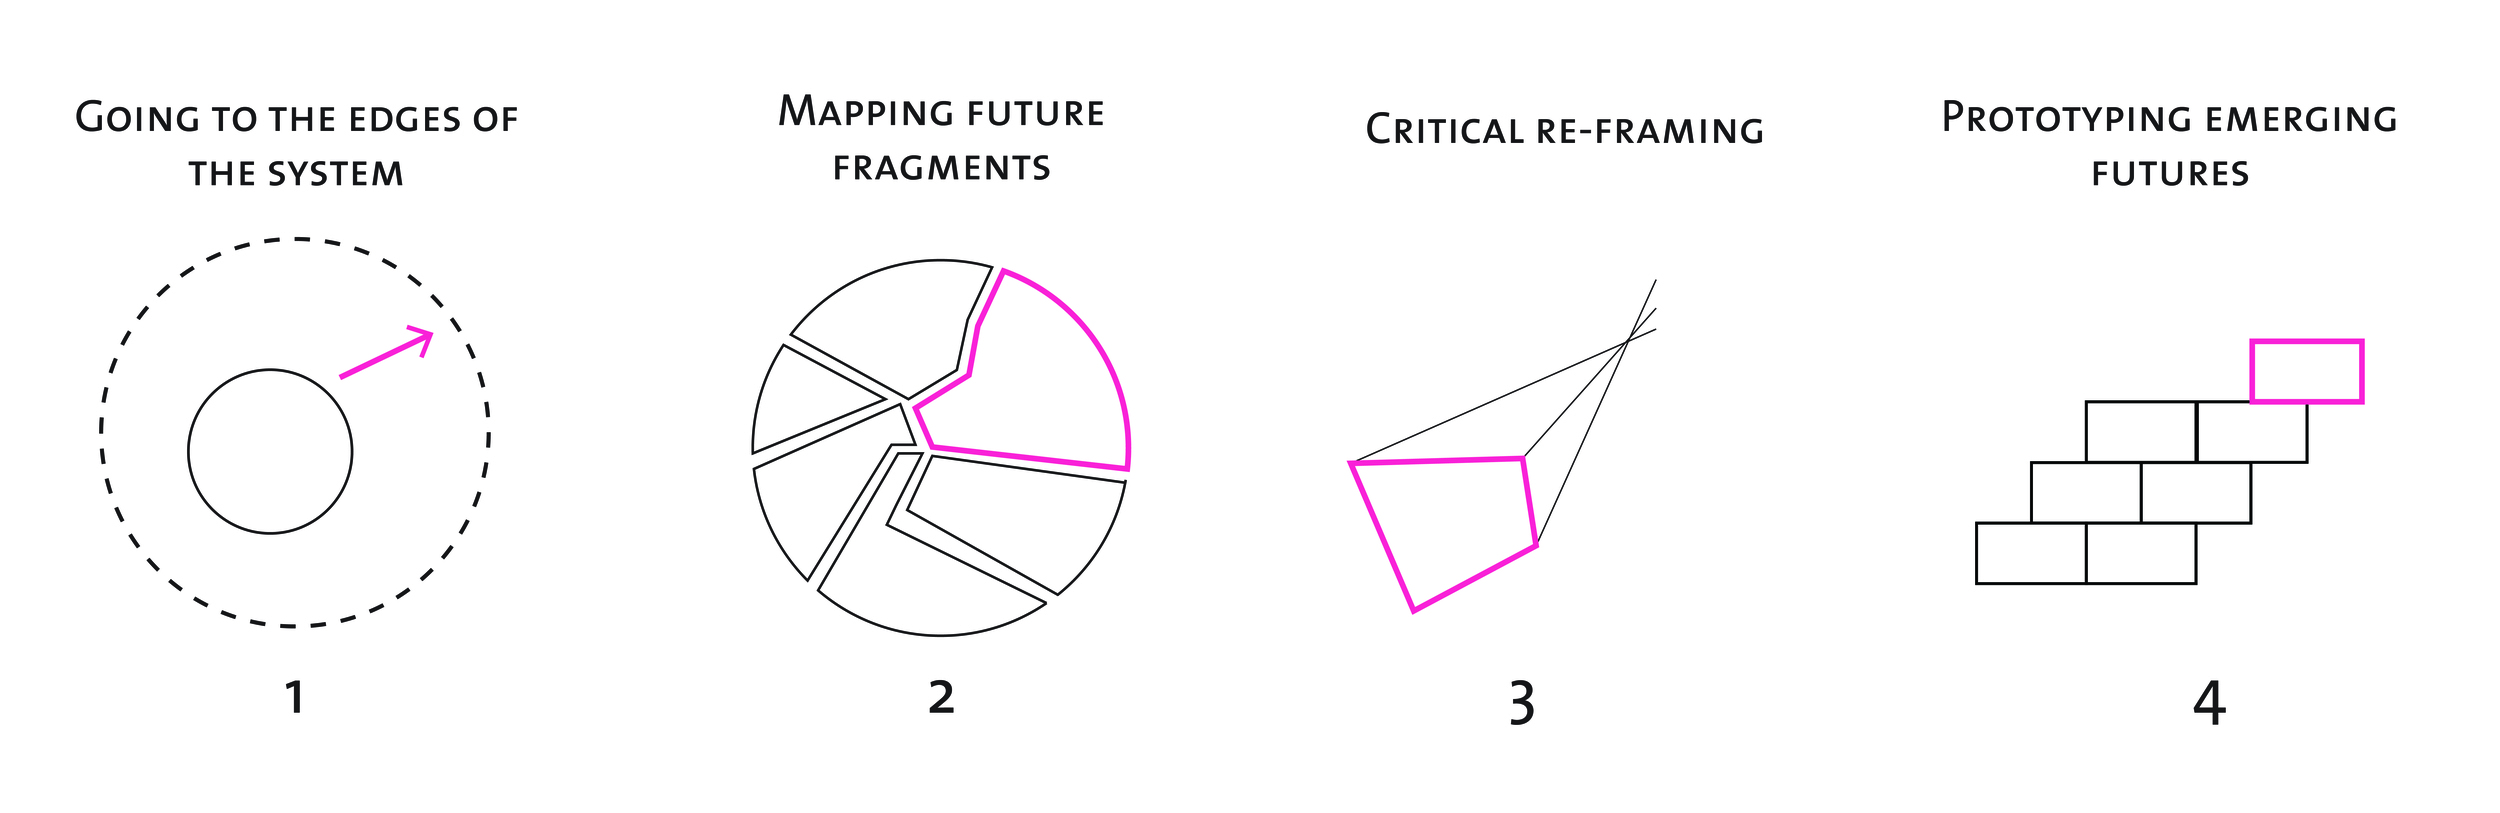 *design process used to create future scenarios for learning included visits to schools that are benchmarks in India, China, and the USA combined with ideation workshops in which designers and educators would translate trends and insights into prototypes for the future of learning